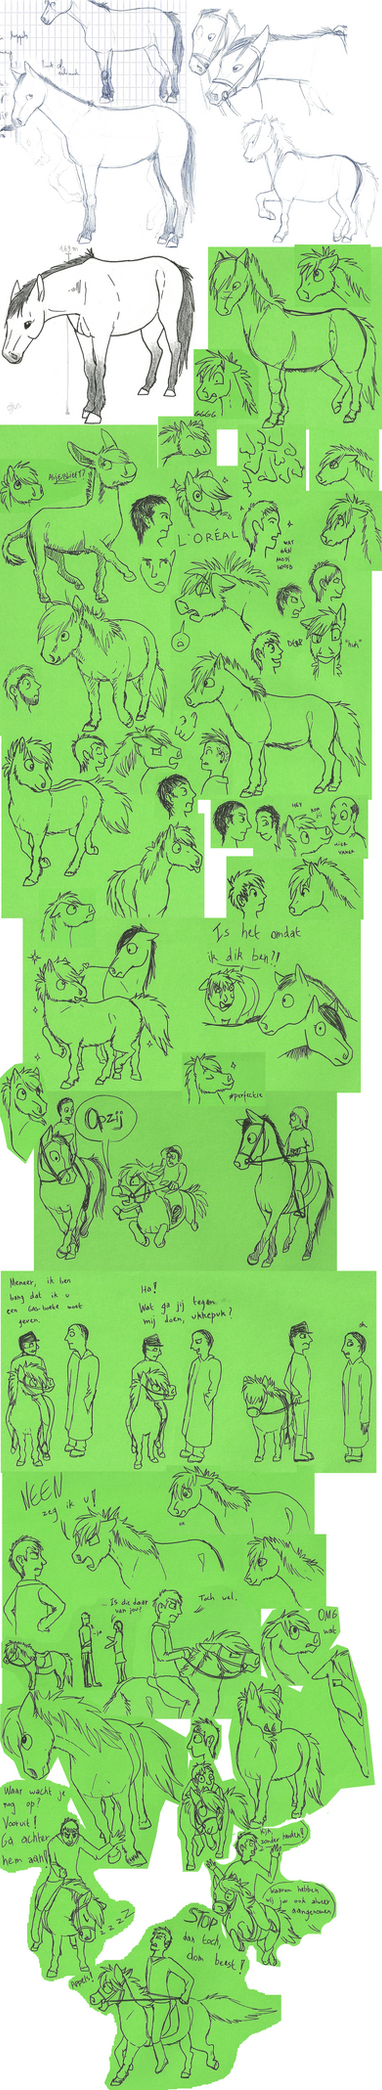 Sketchdump of horses and pooownies by SpitfiresOnIce